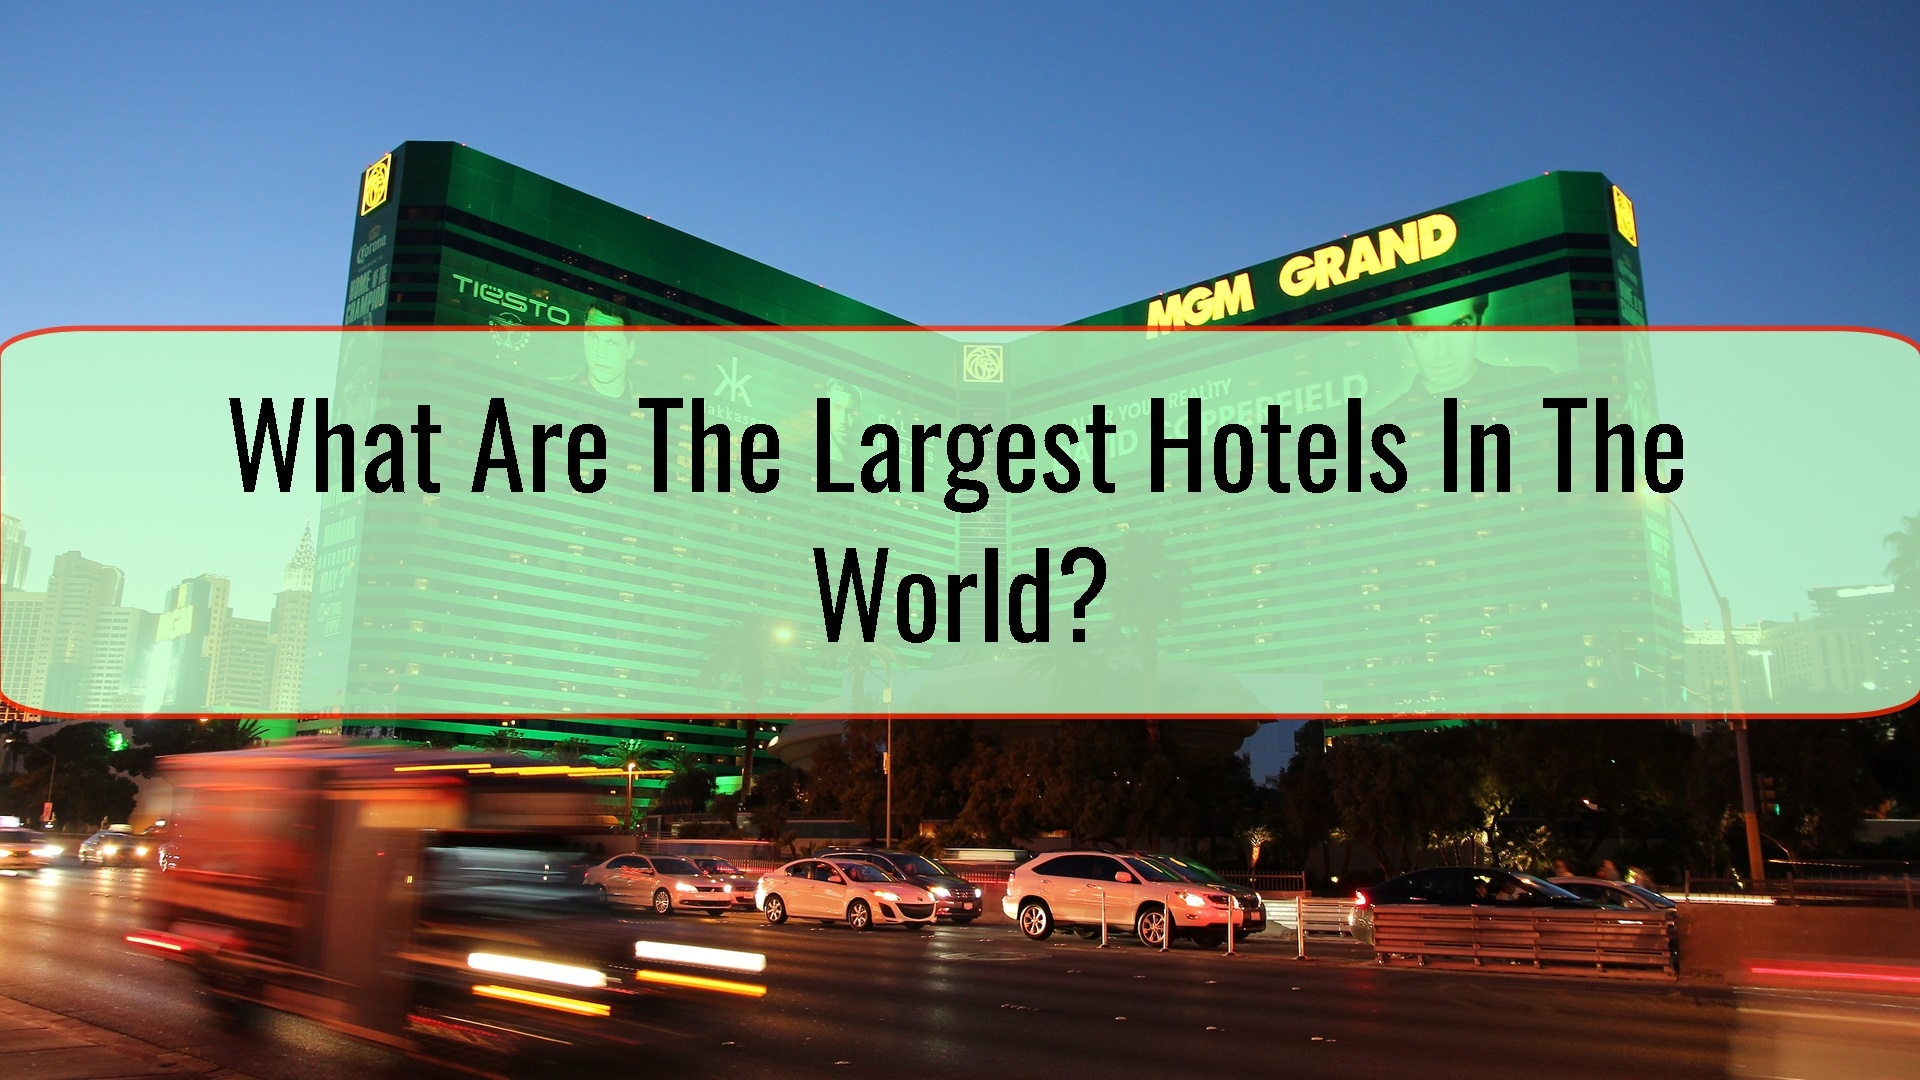 What Are The Largest Hotels In The World